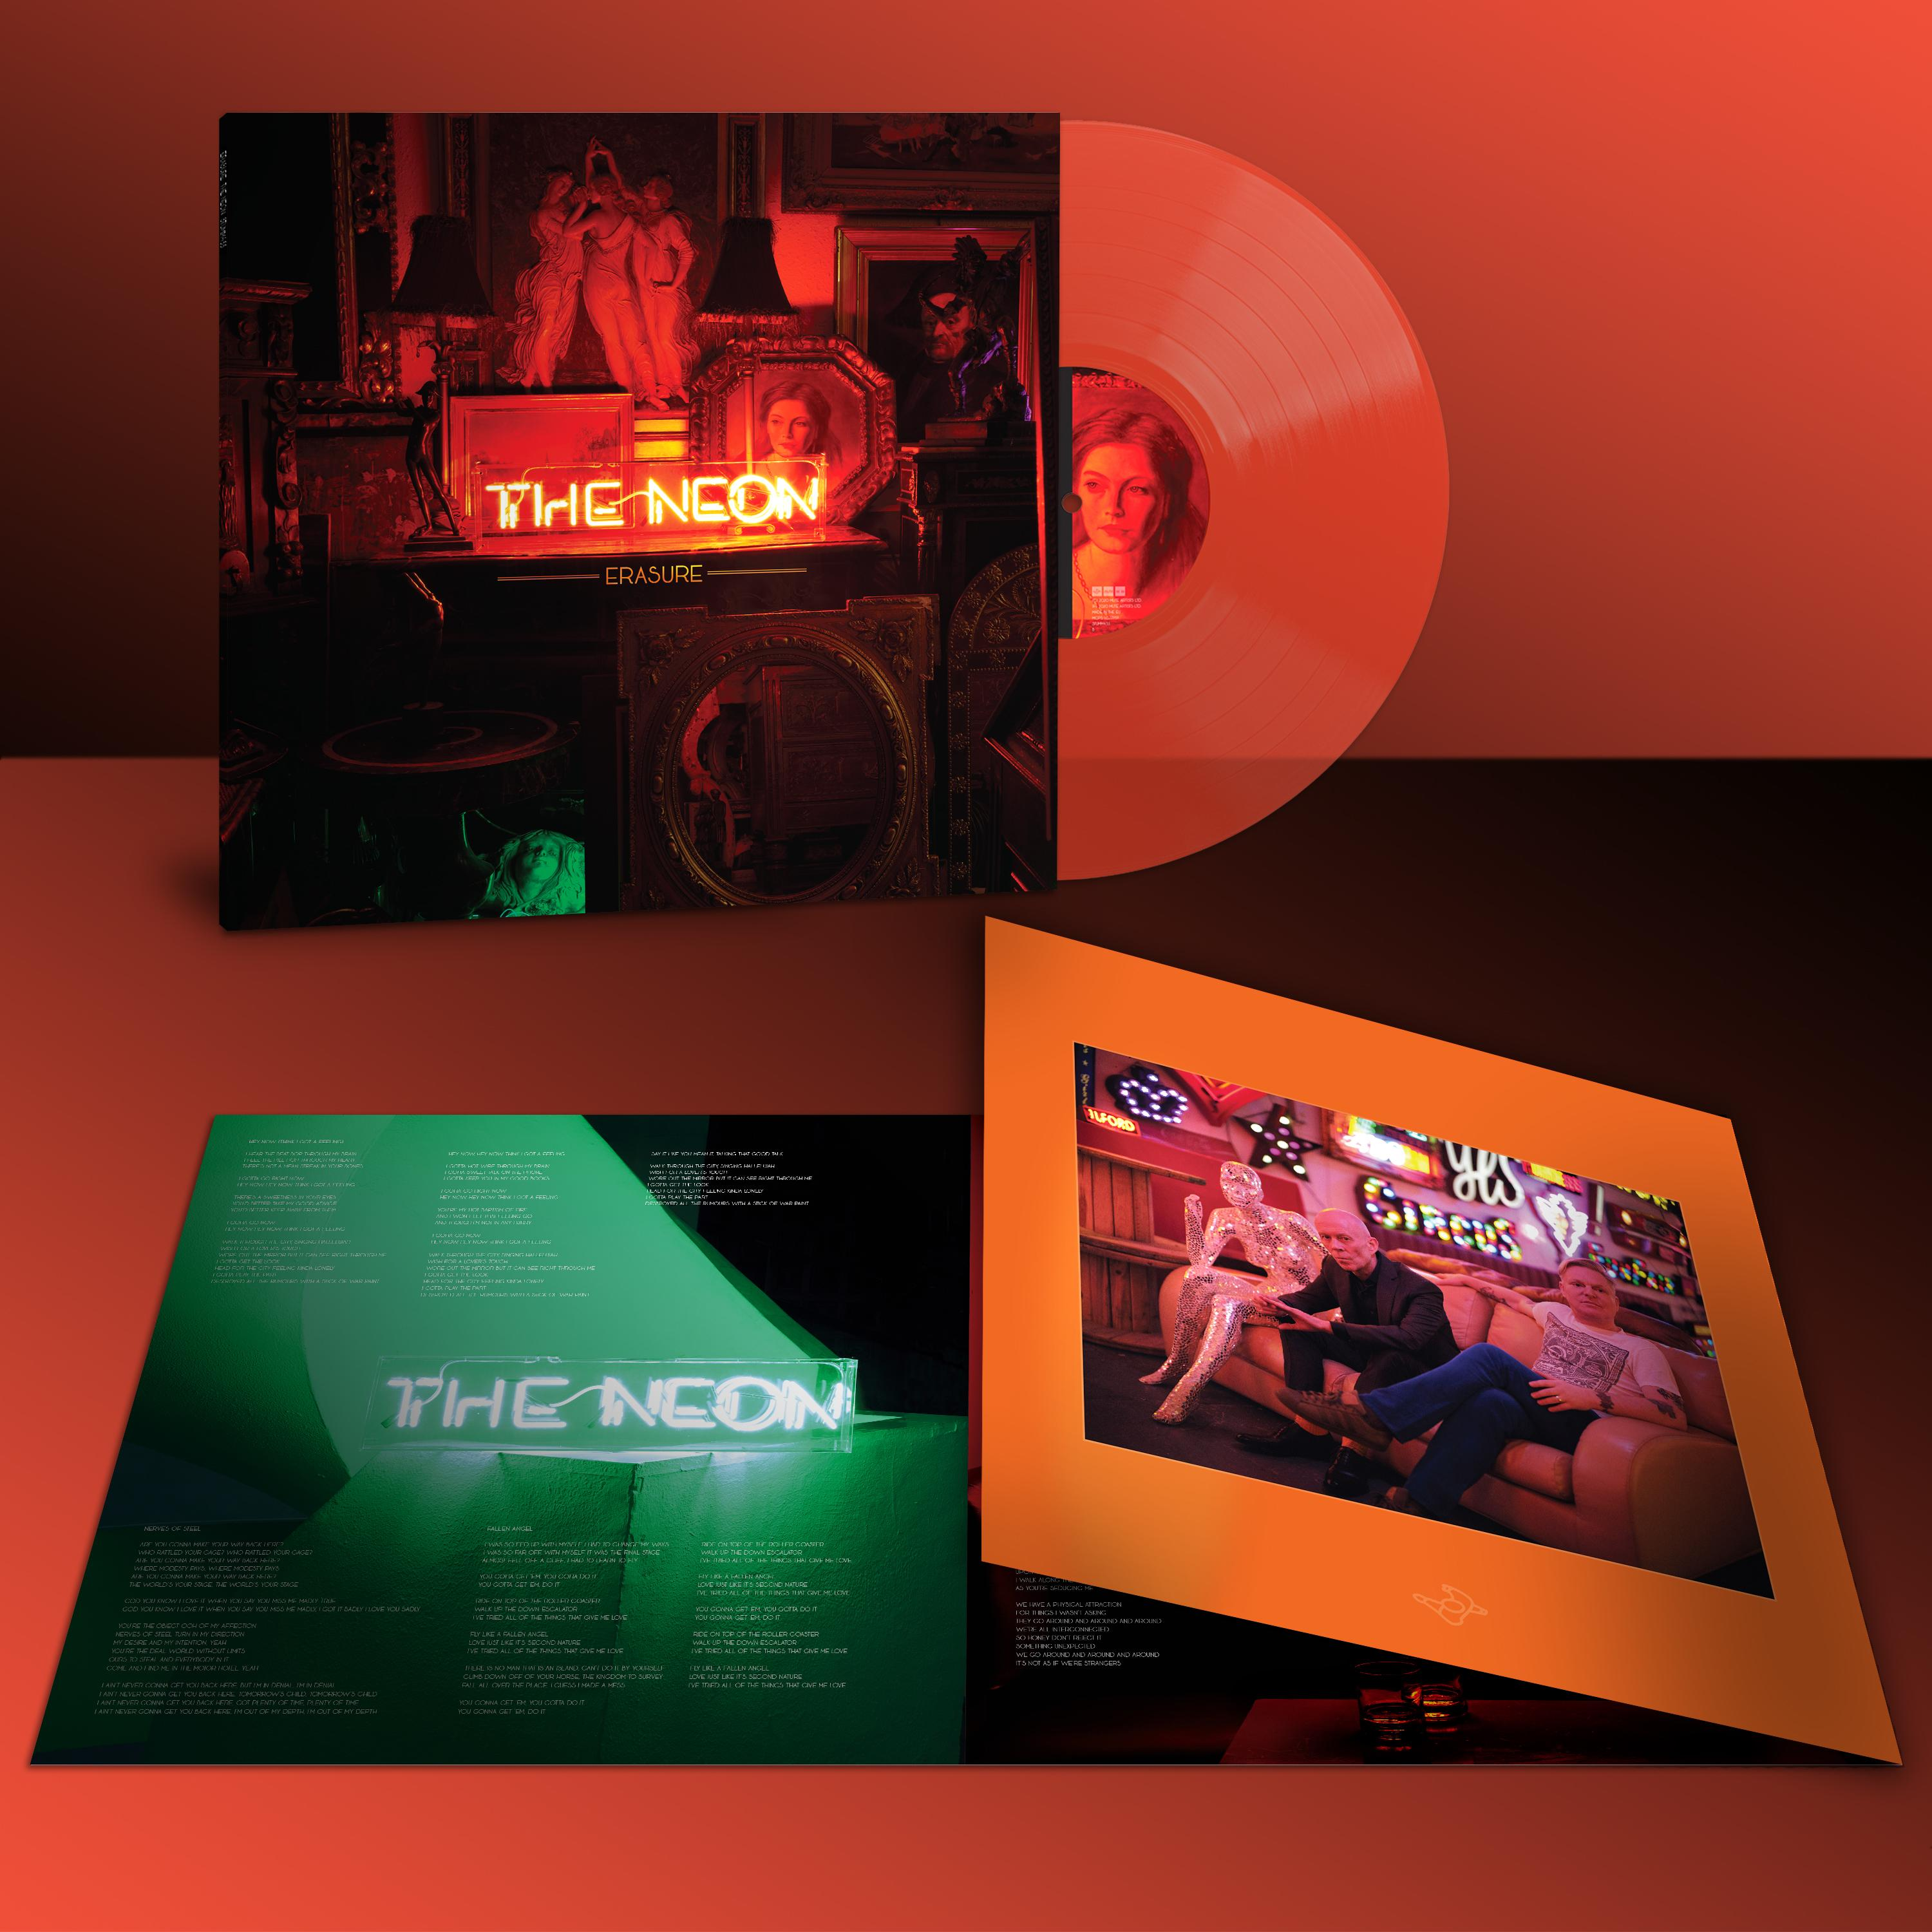 Erasure - The Neon Limited Edition Orange Colour Vinyl Record Album